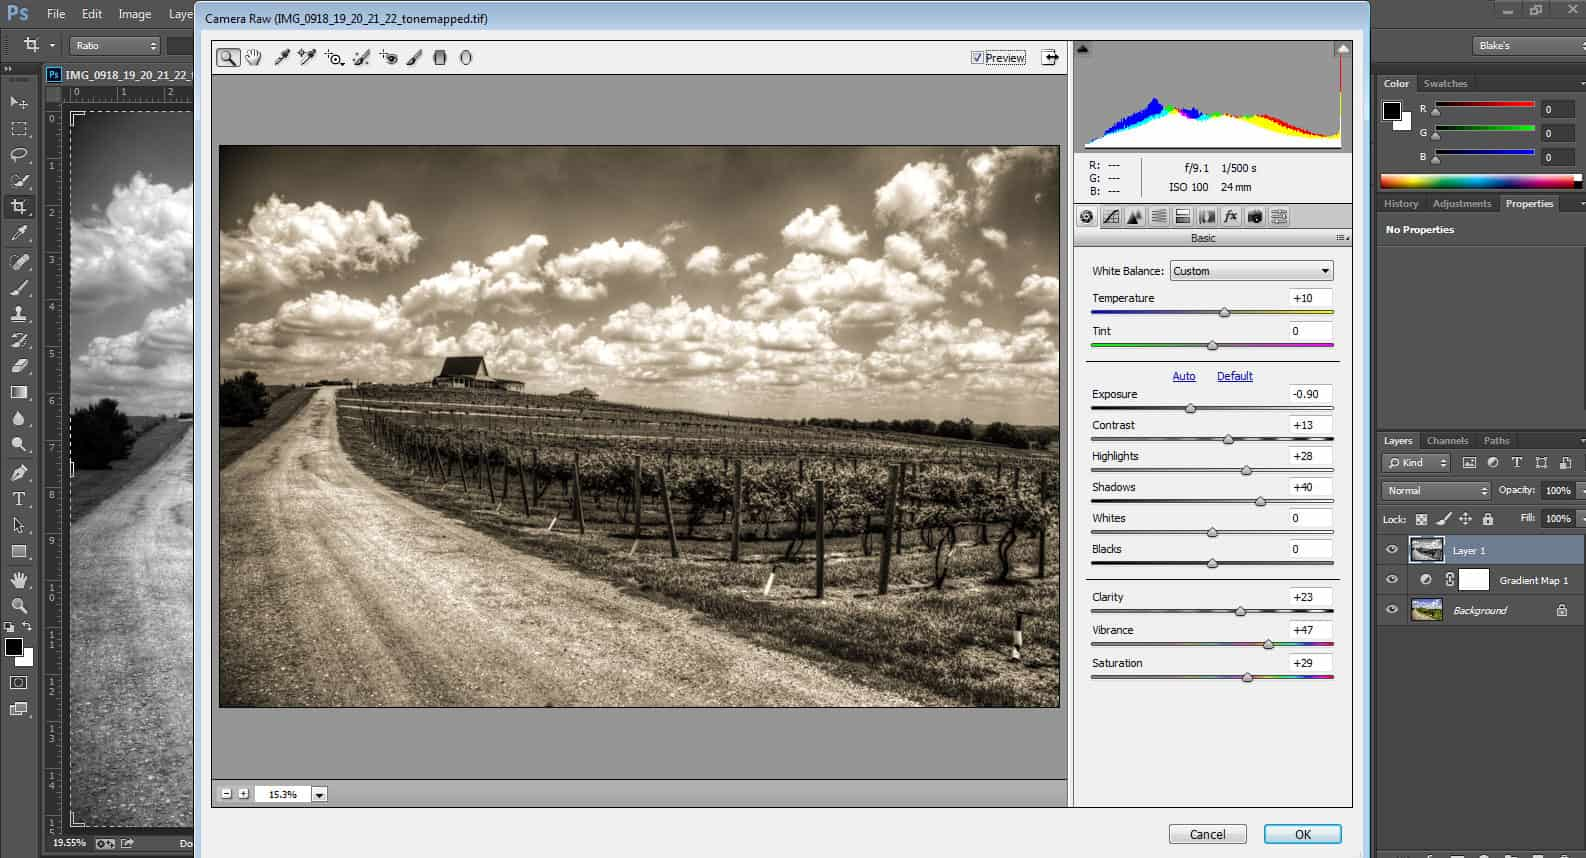 First look at what is new in Photoshop CC!